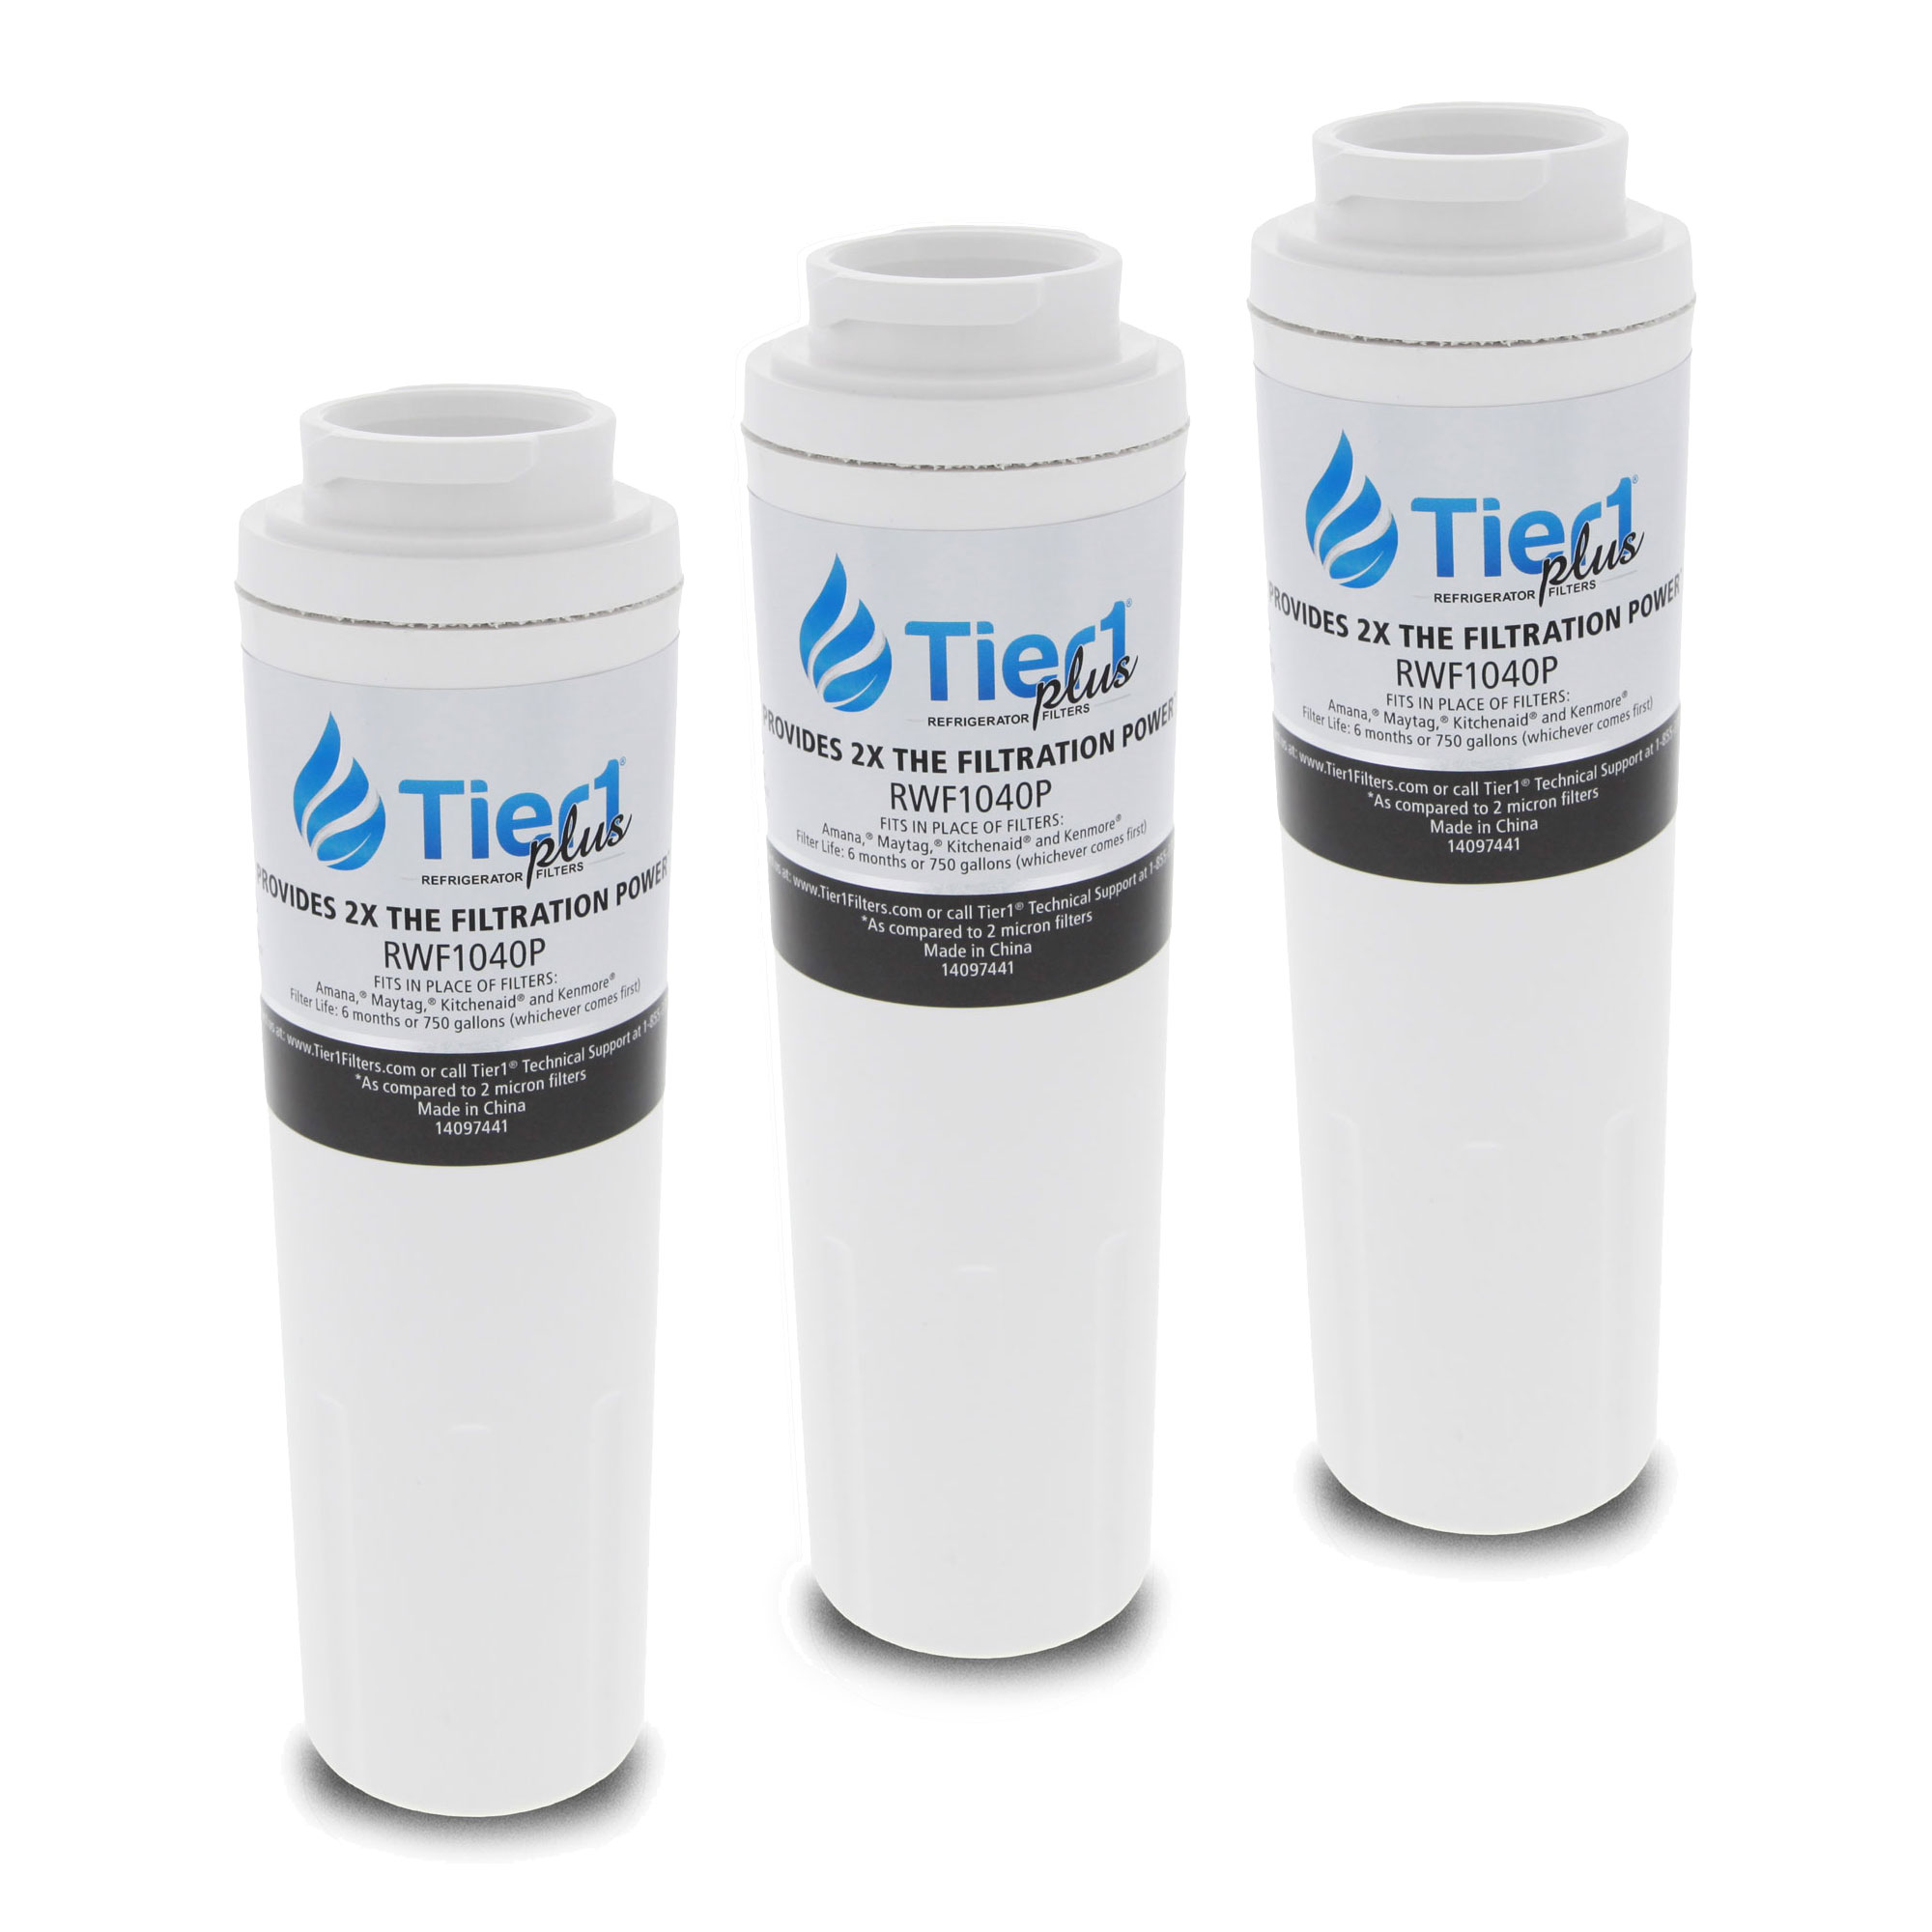 EDR4RXD1 UKF8001 Maytag Comparable Refrigerator Water Filter Replacement by Tier1 Plus (3-Pack) TIER1_RWF1040P_3_PACK